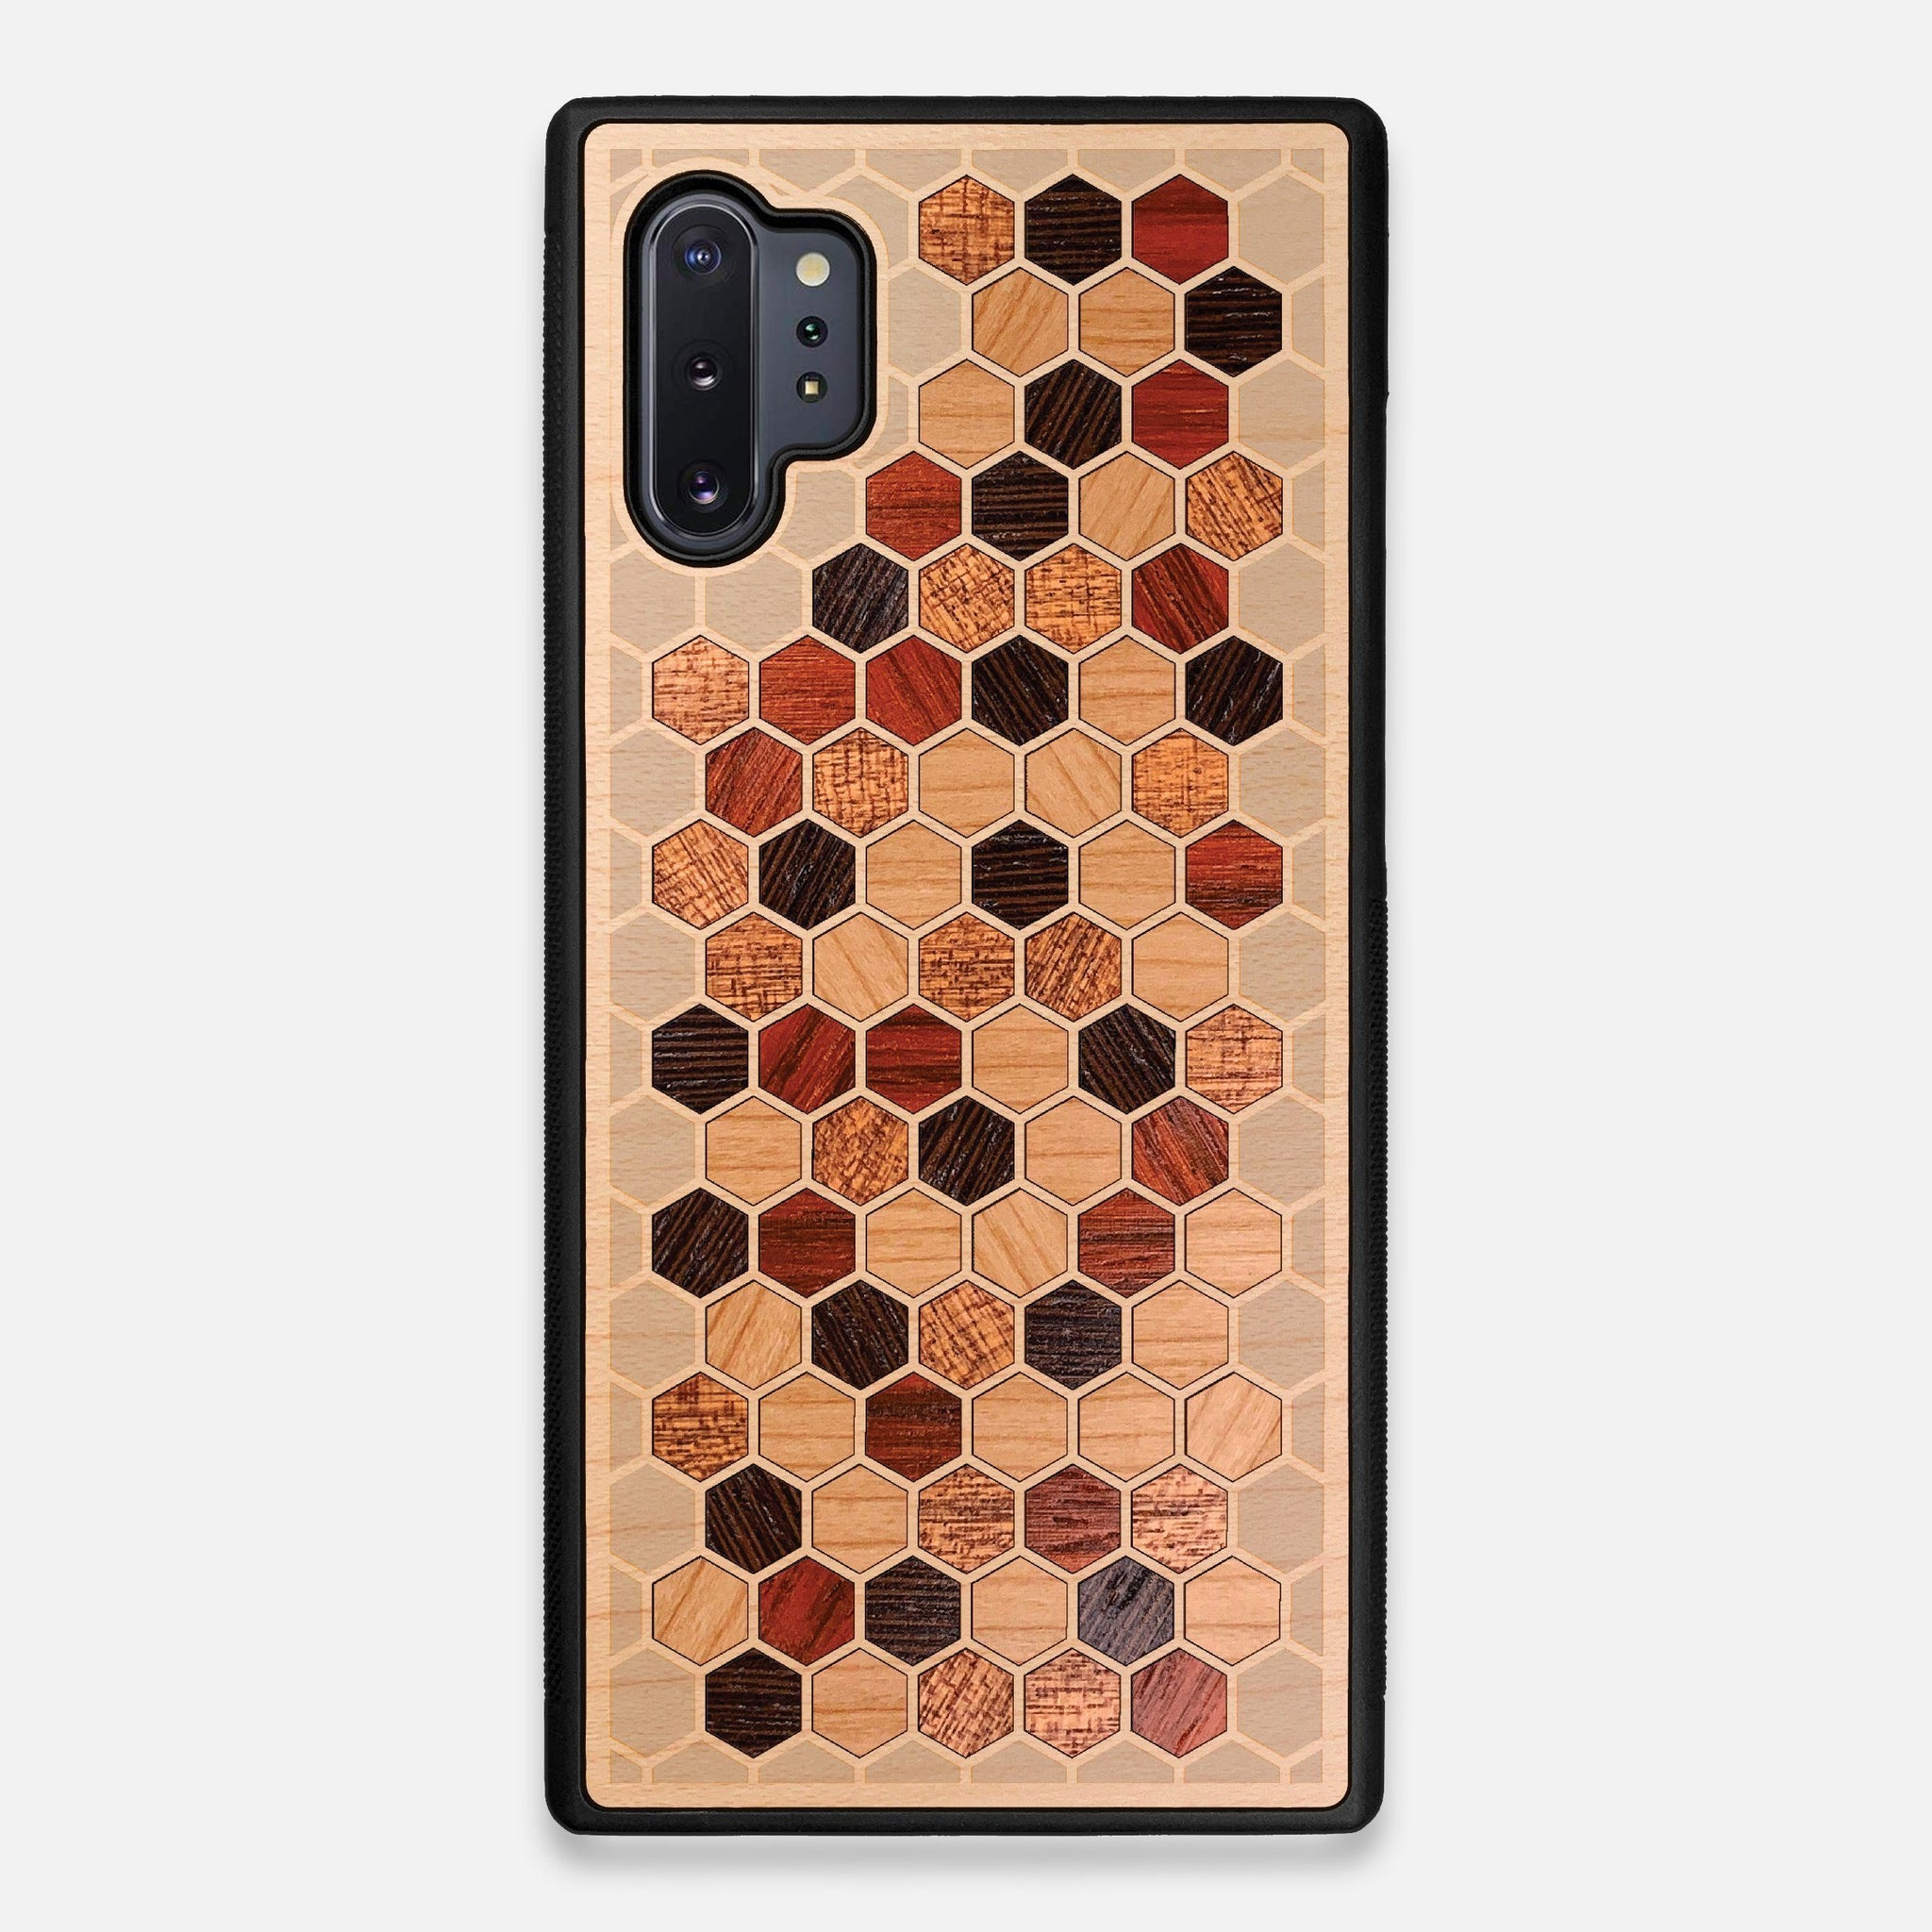 Front view of the Cellular Maple Wood Galaxy Note 10+ Case by Keyway Designs